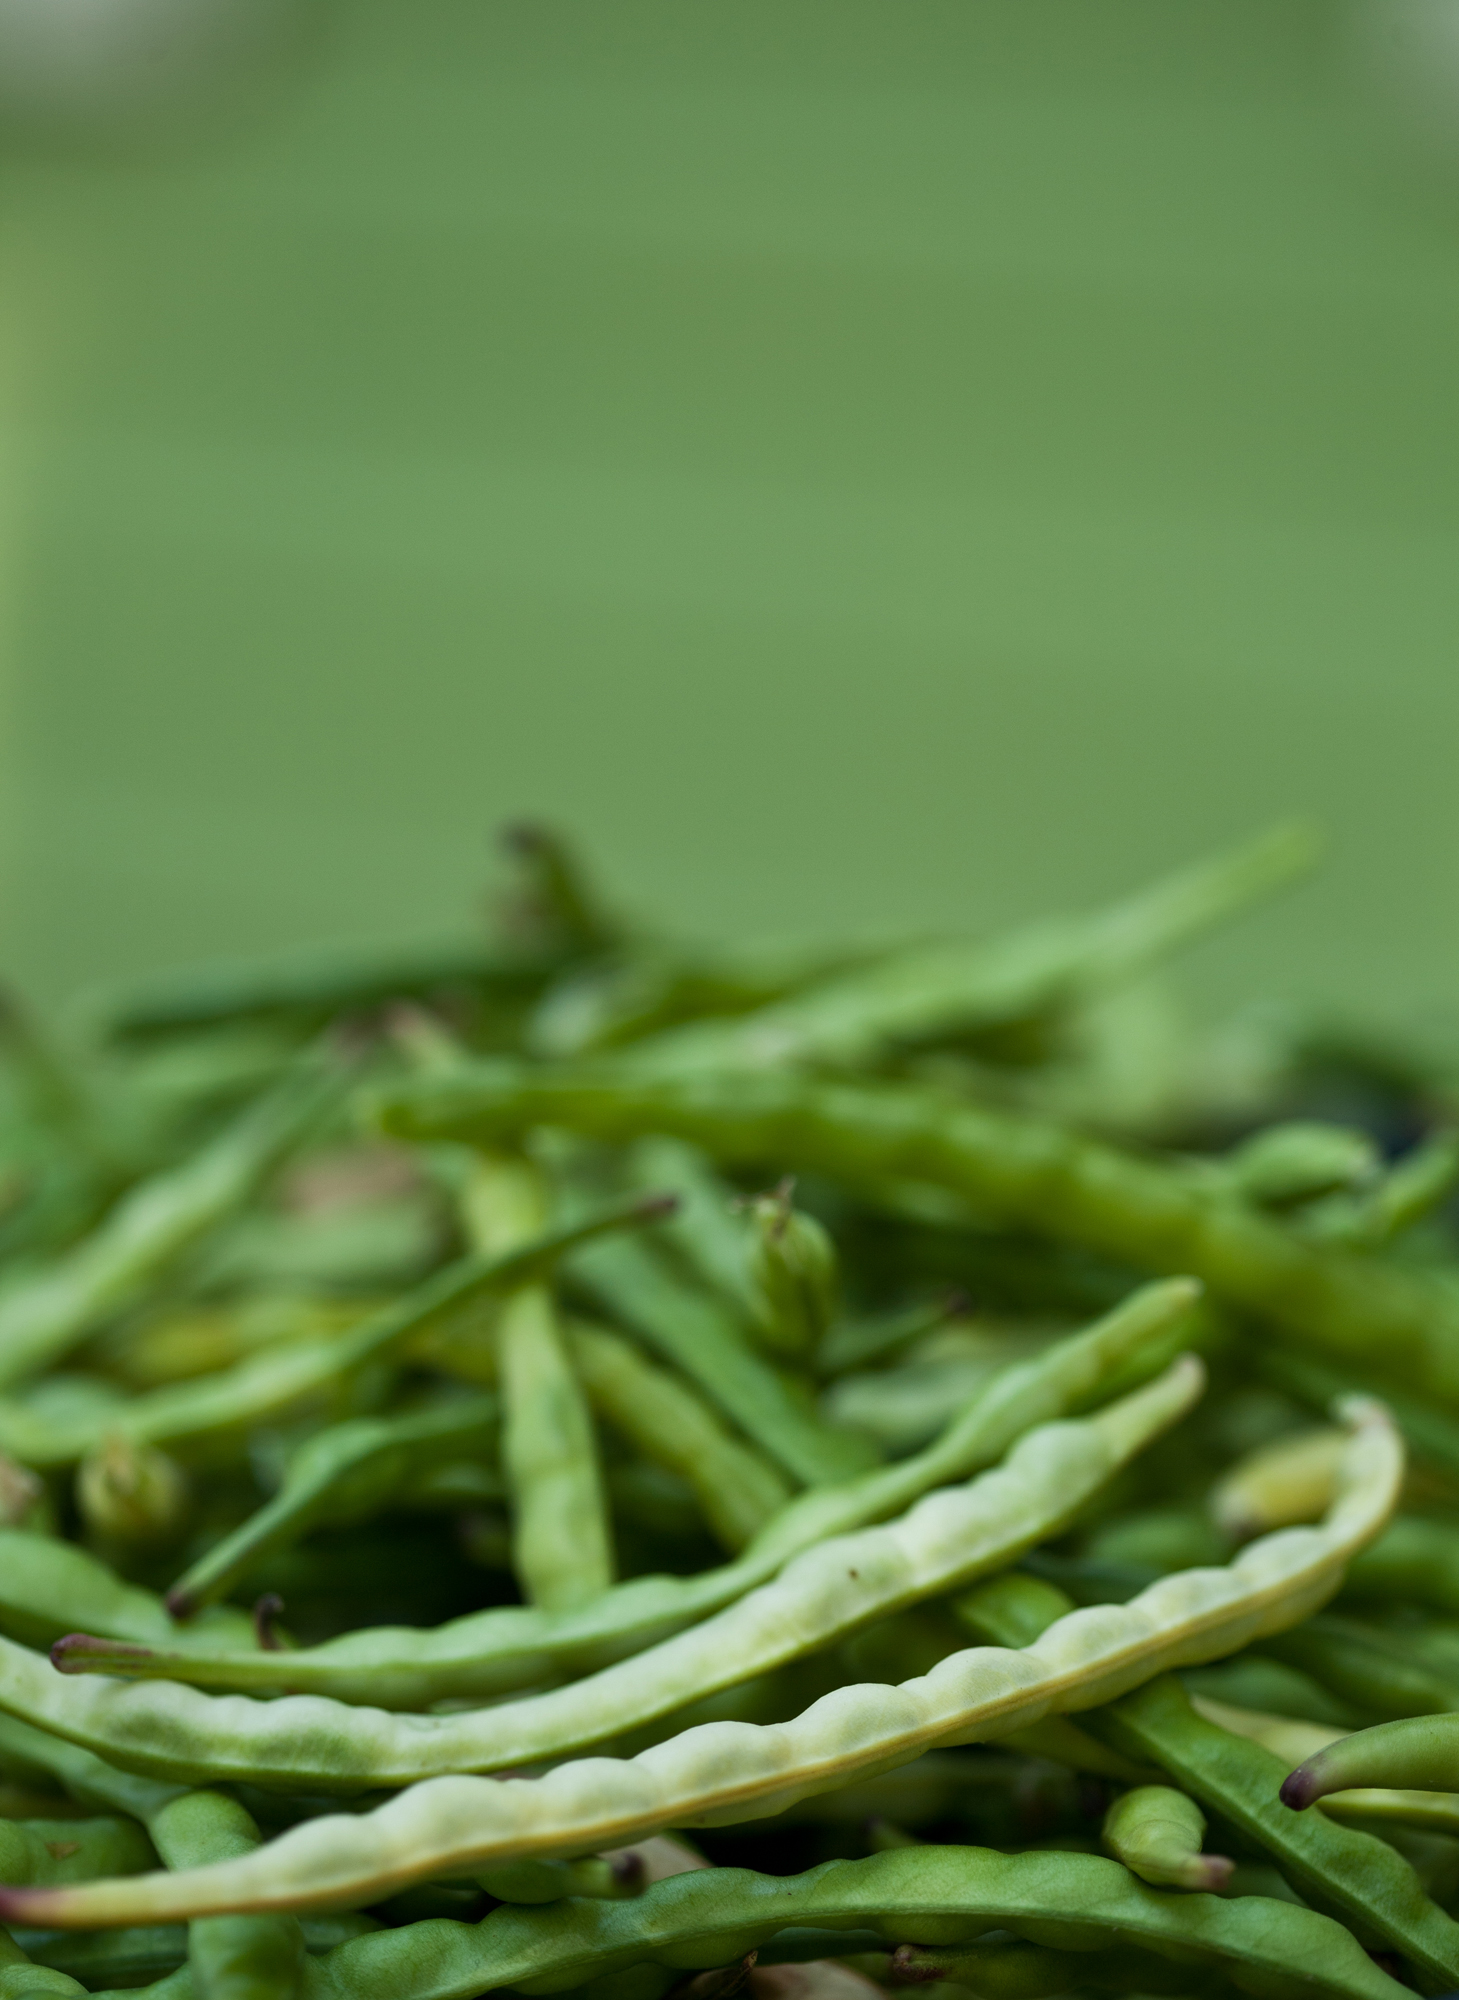 green-beans-stock-photo.jpg